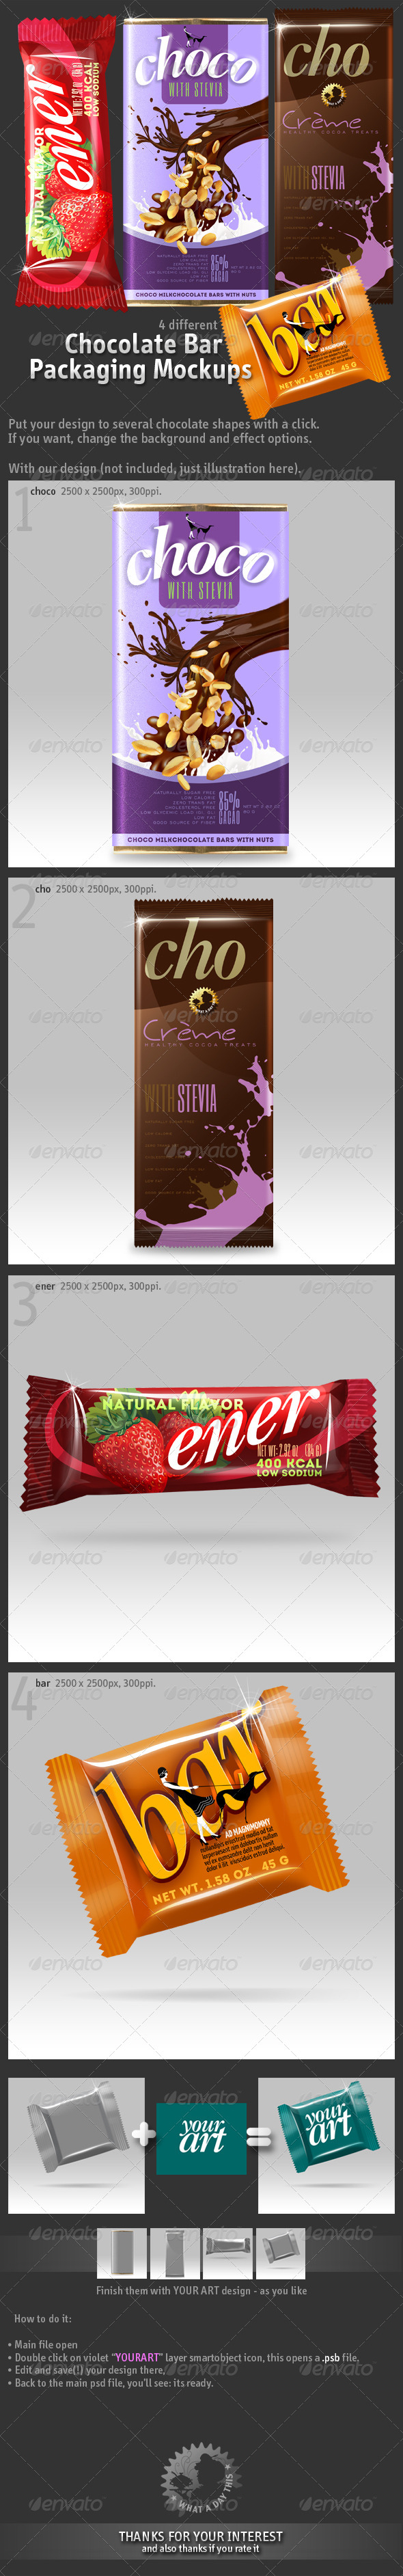 4 Chocolate Bar Packaging Mockups - Food and Drink Packaging